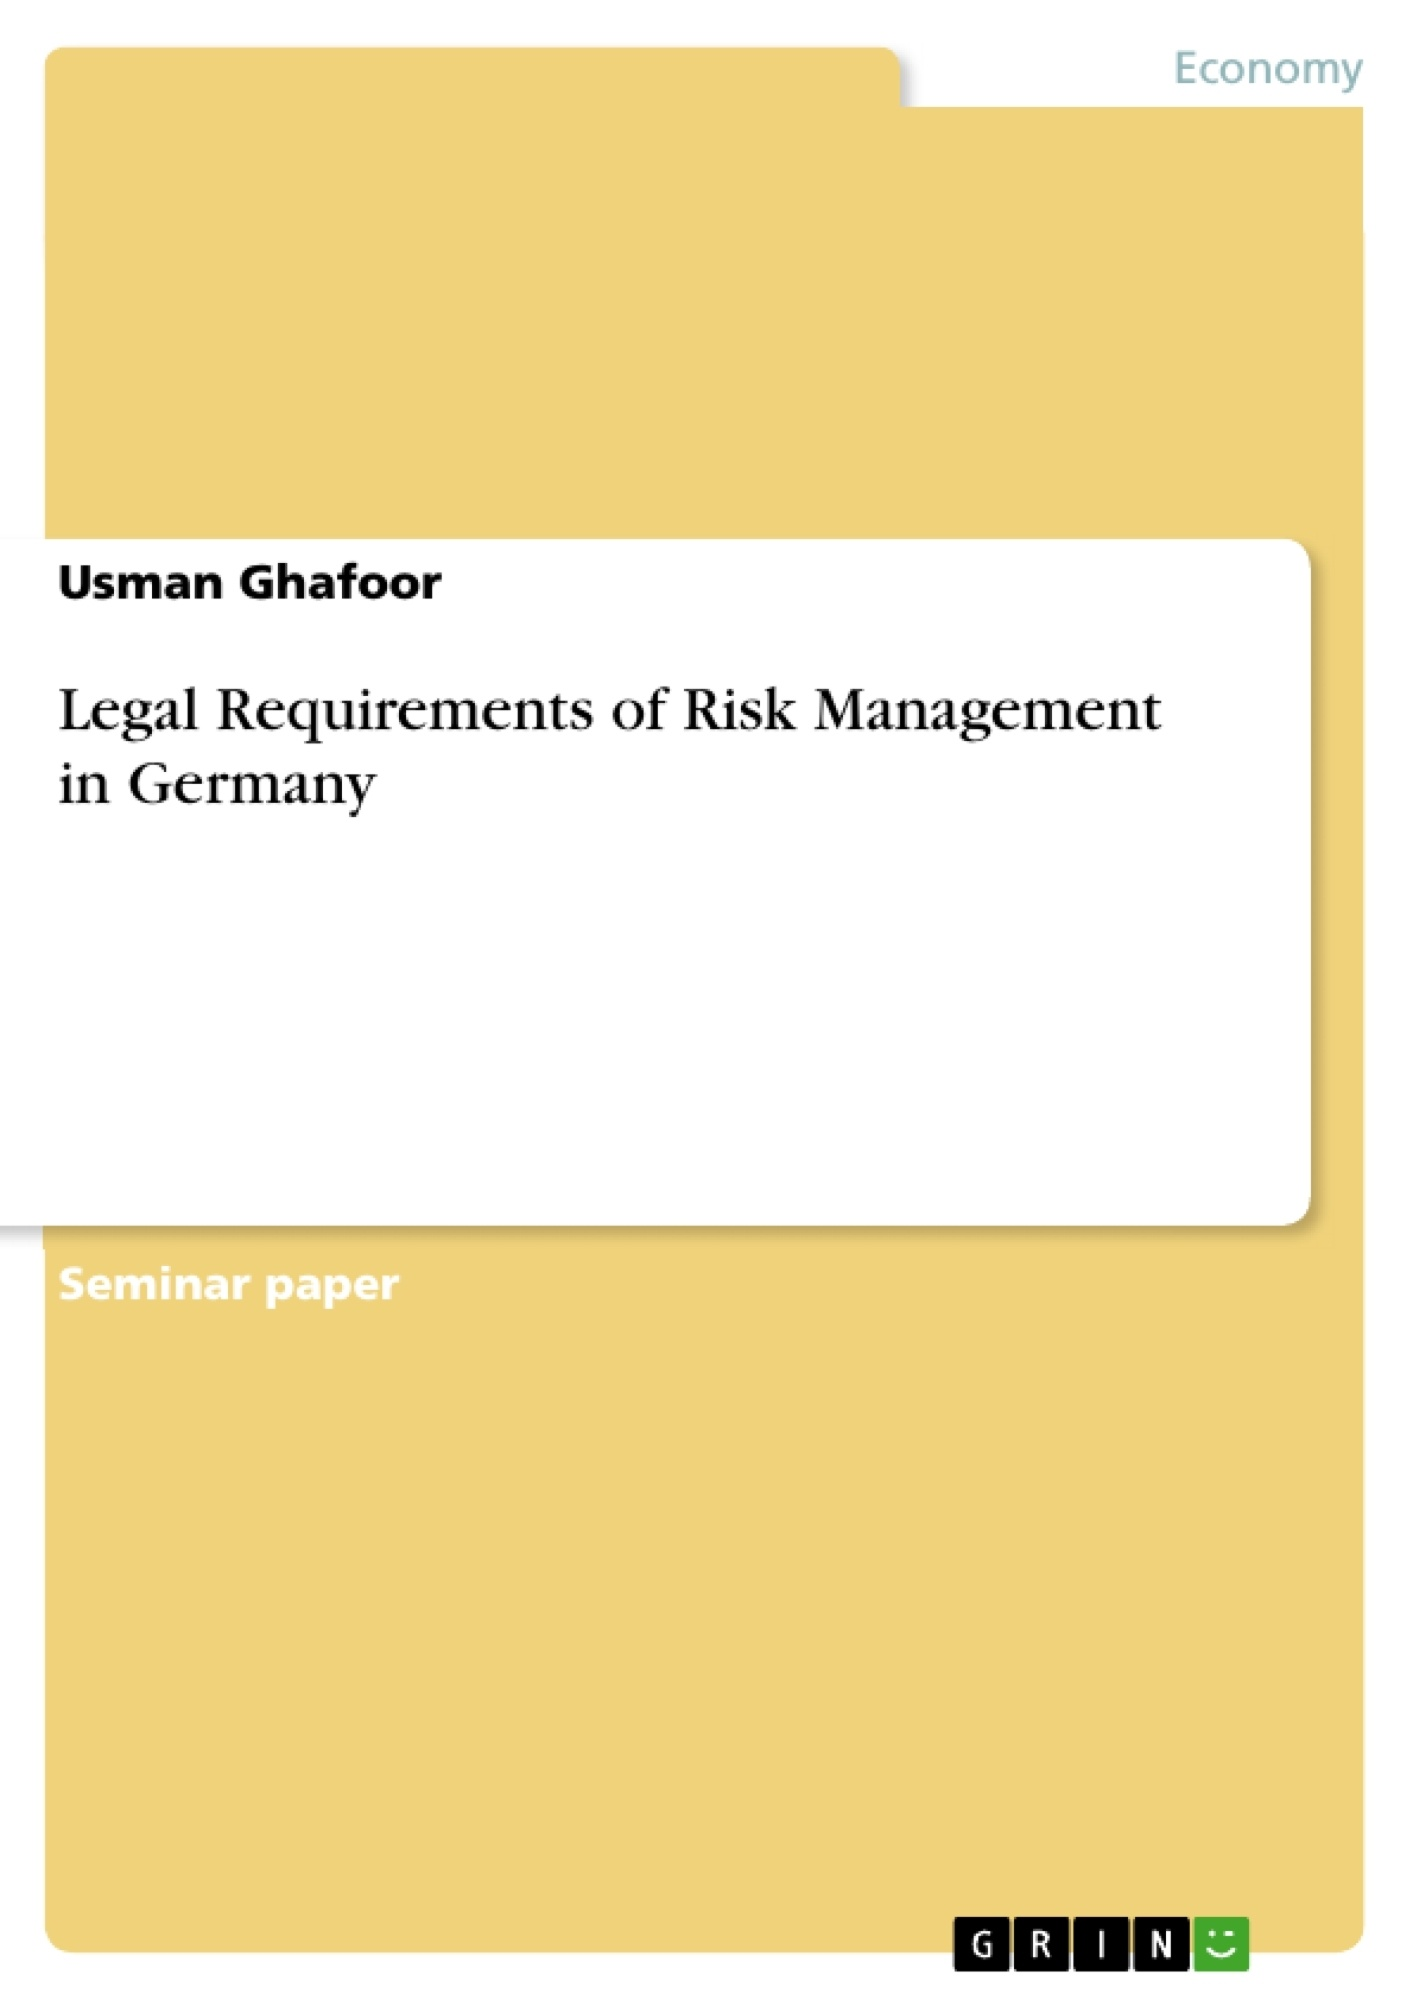 Title: Legal Requirements of Risk Management in Germany